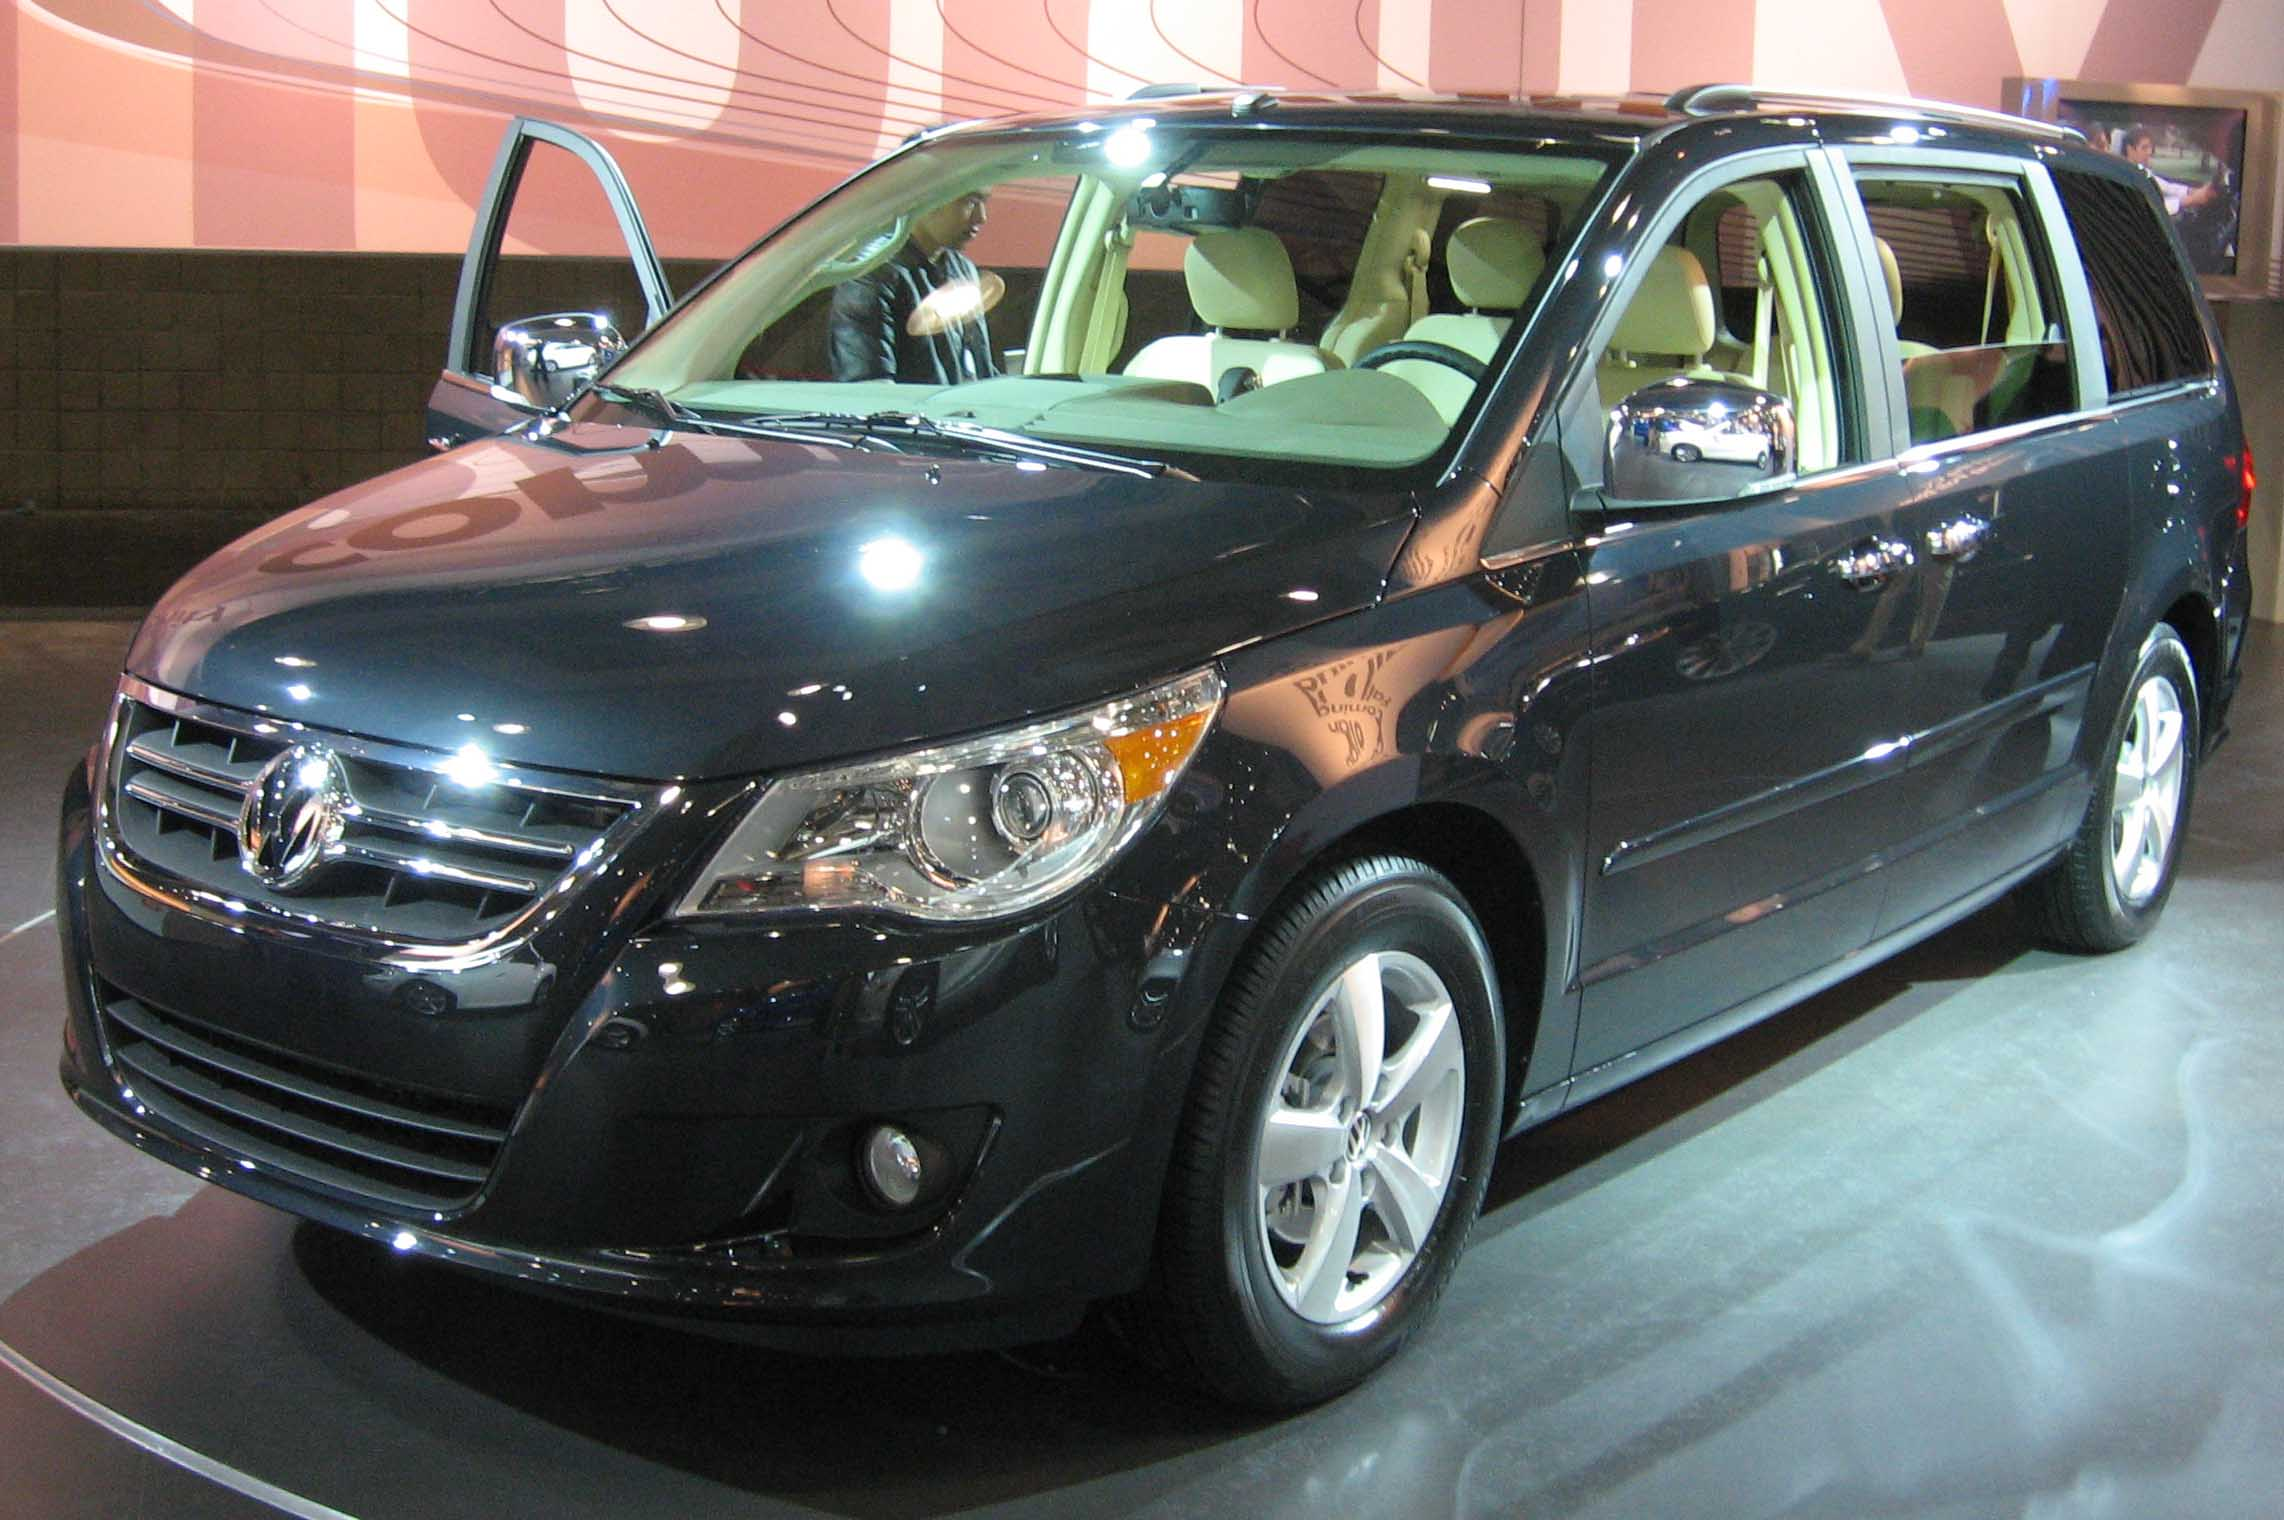 file:2009 volkswagen routan ny - wikimedia commons